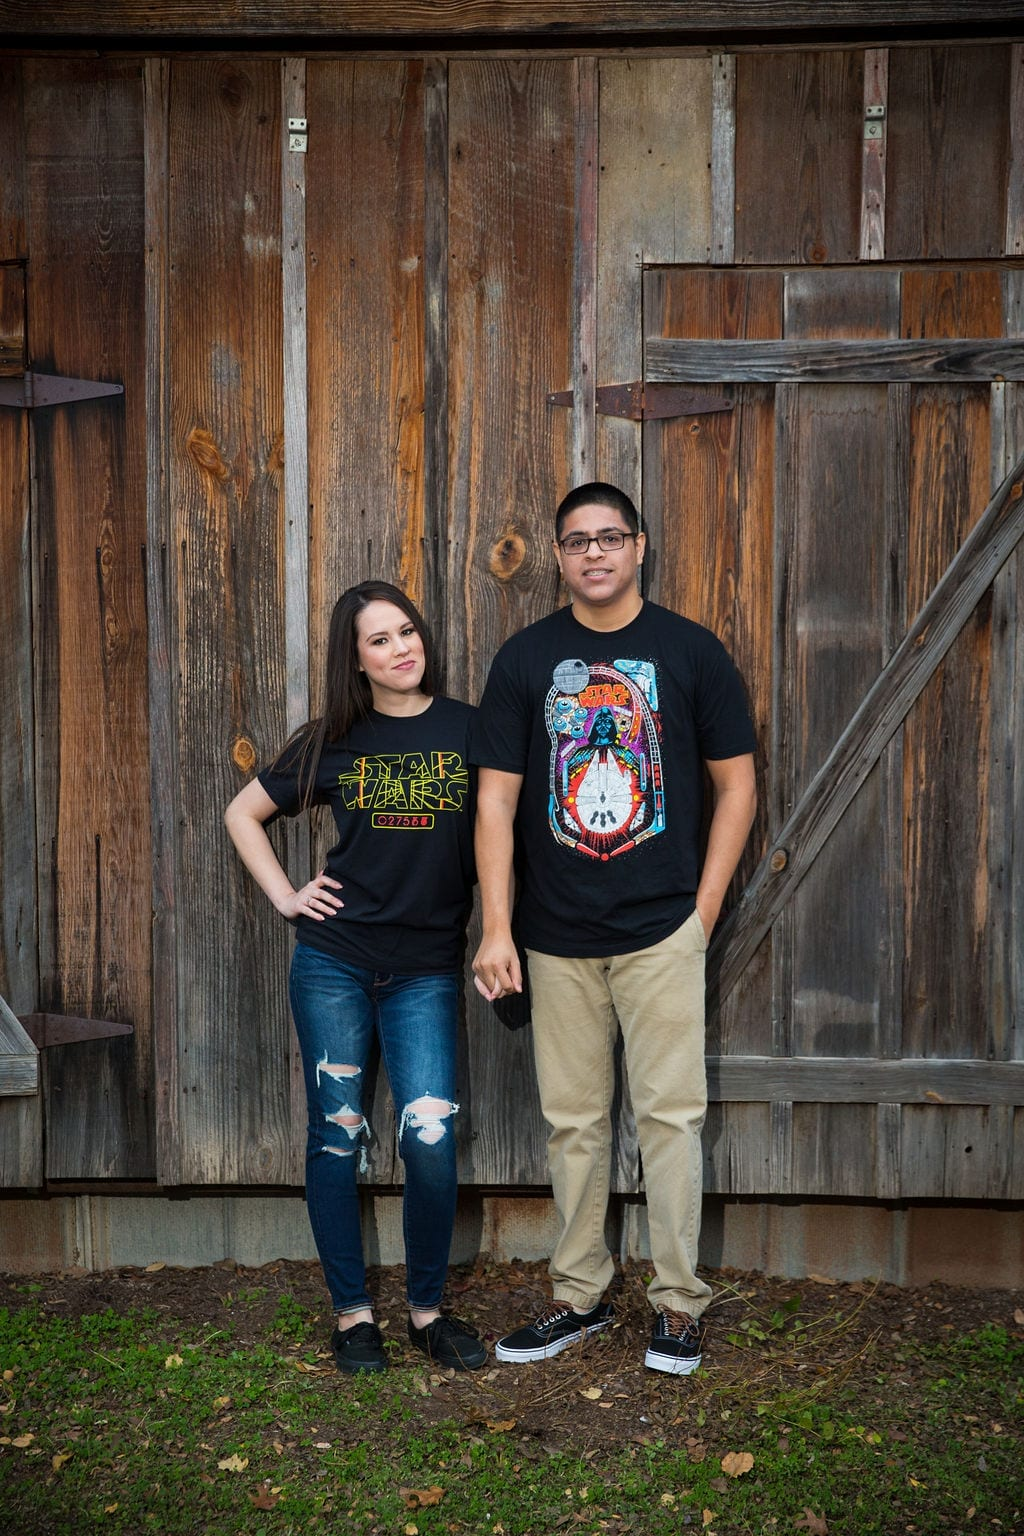 Aamber and Alex engagement session in Gruene Tx wood wall tee shirt